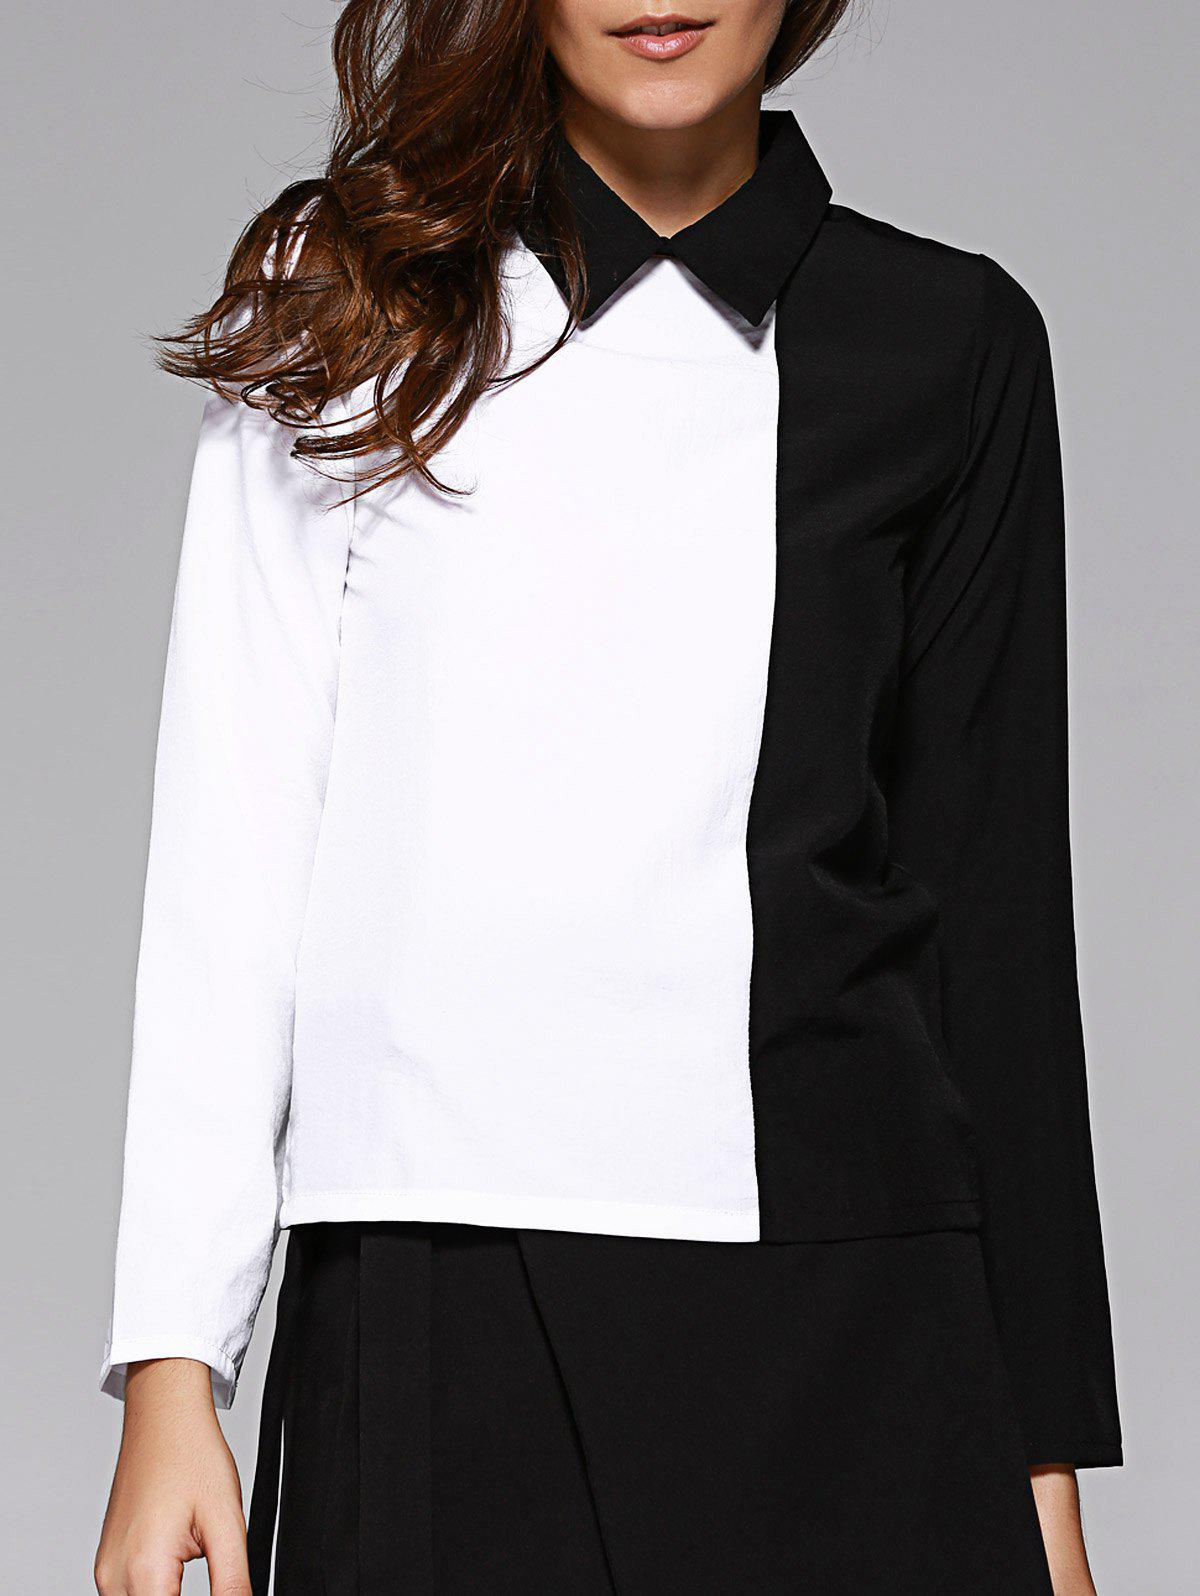 OL Color Block Flat Collar Chiffon Shirt For Women - WHITE/BLACK 2XL